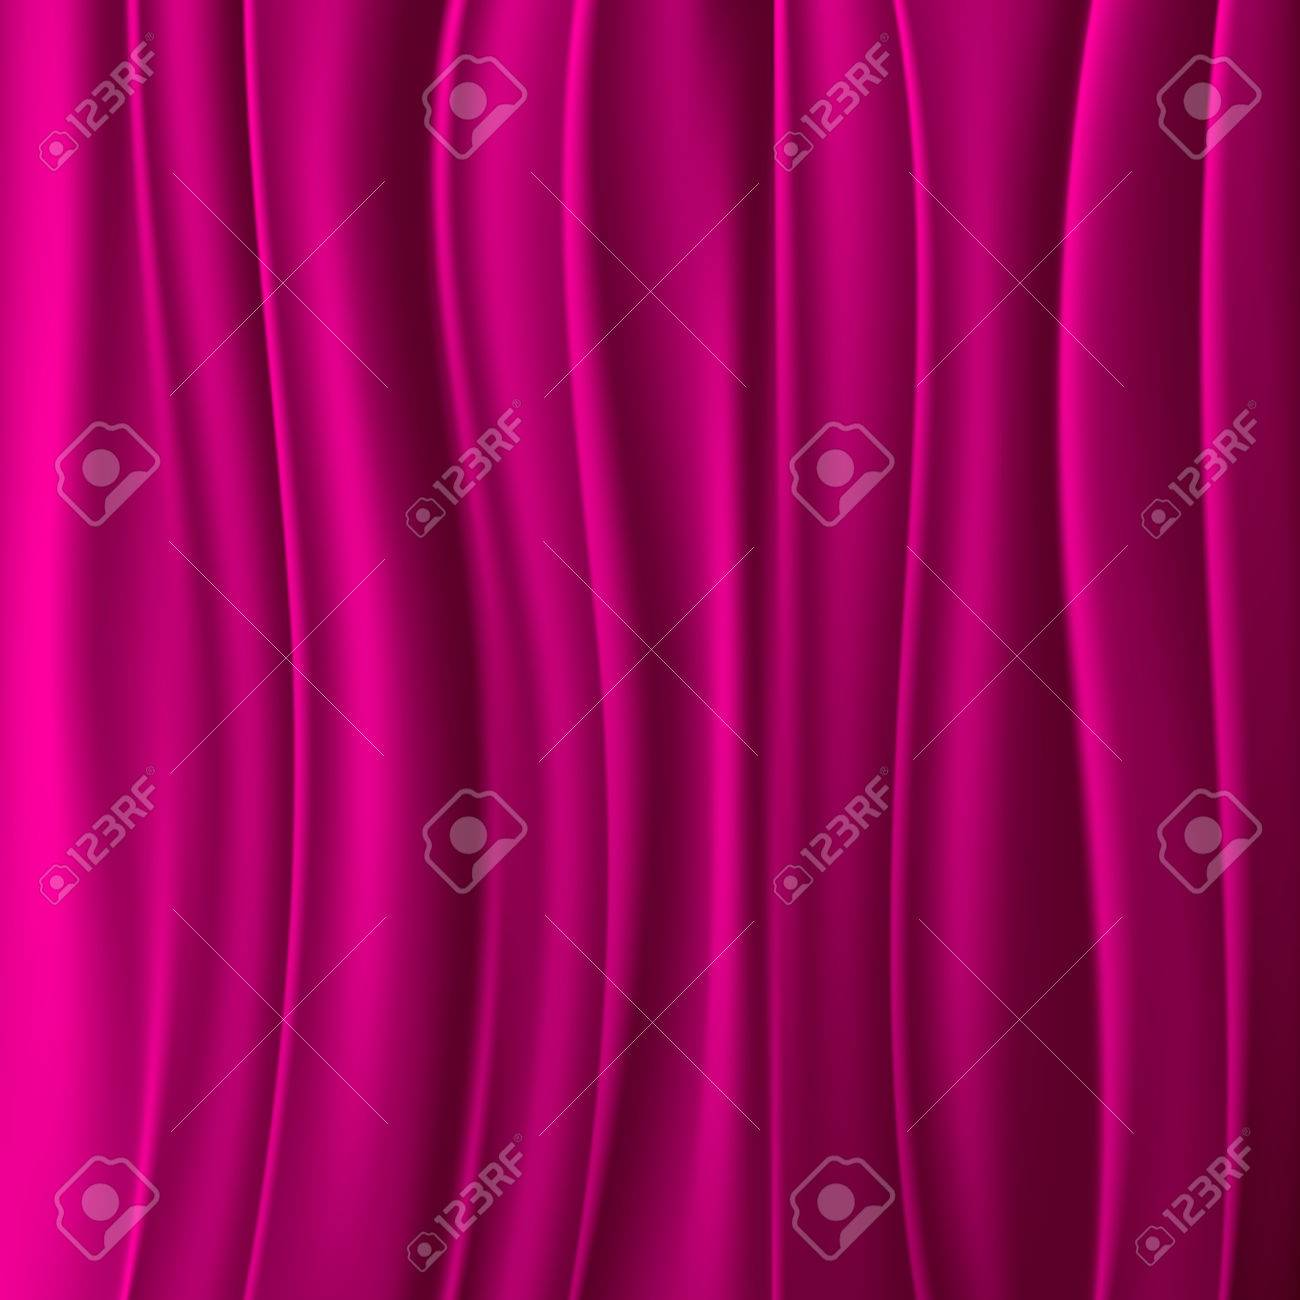 Magenta curtain abstract background - 43592236